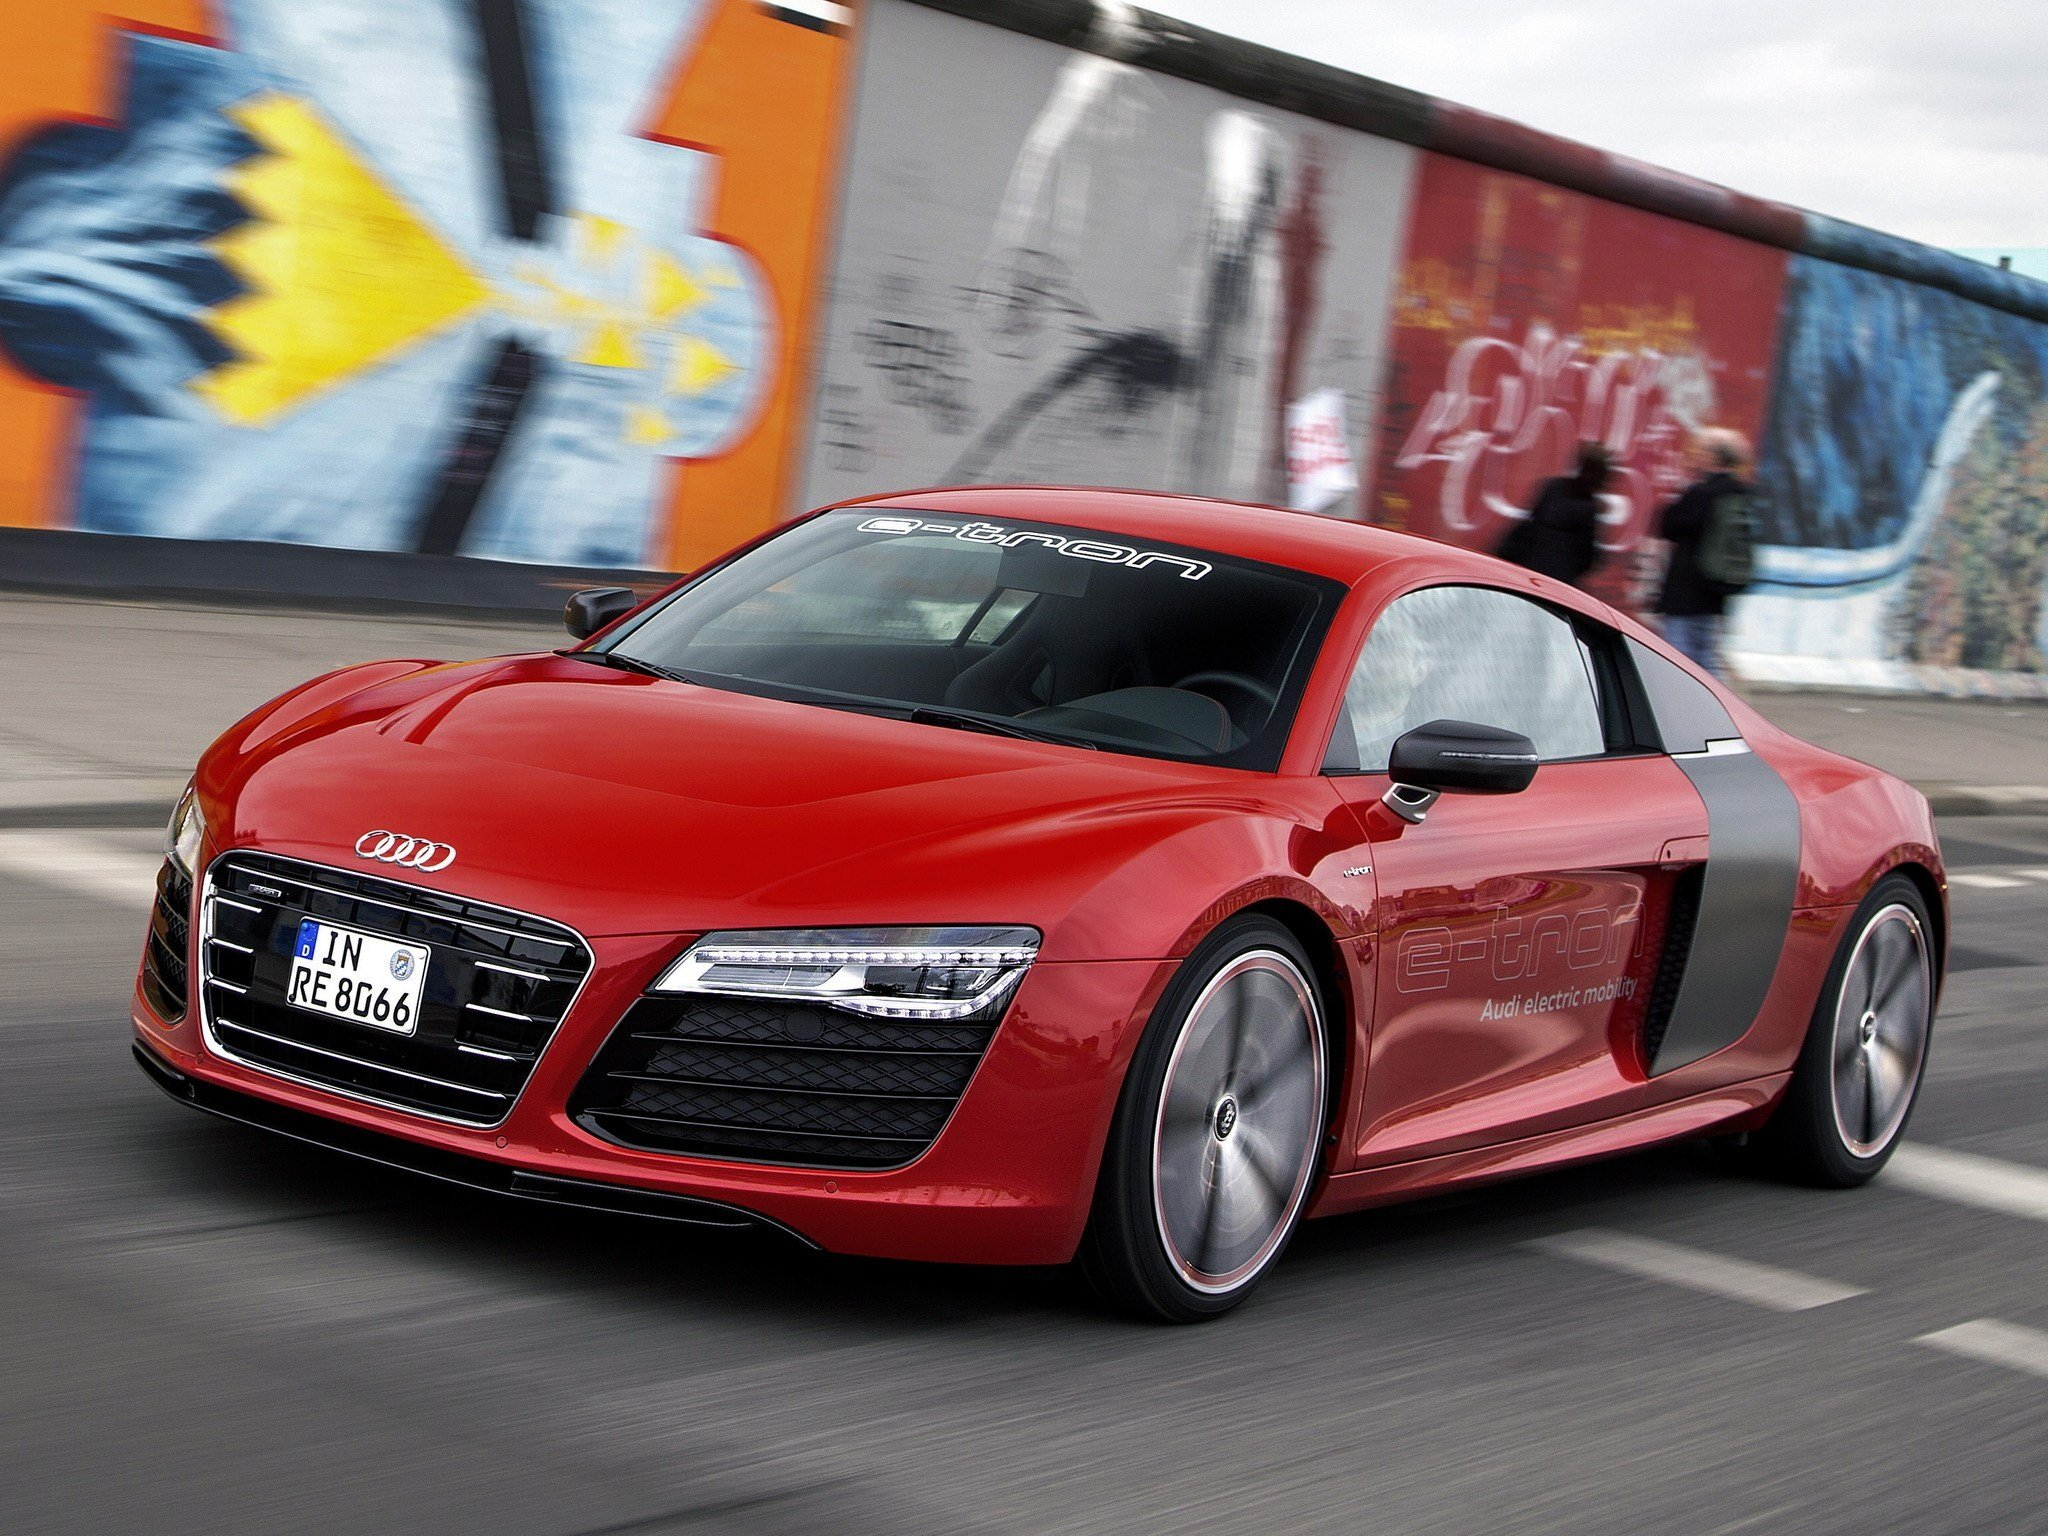 Latest Tag For Audi R8 Red Wallpaper Audi R8 V10 2009 Uk Free Download